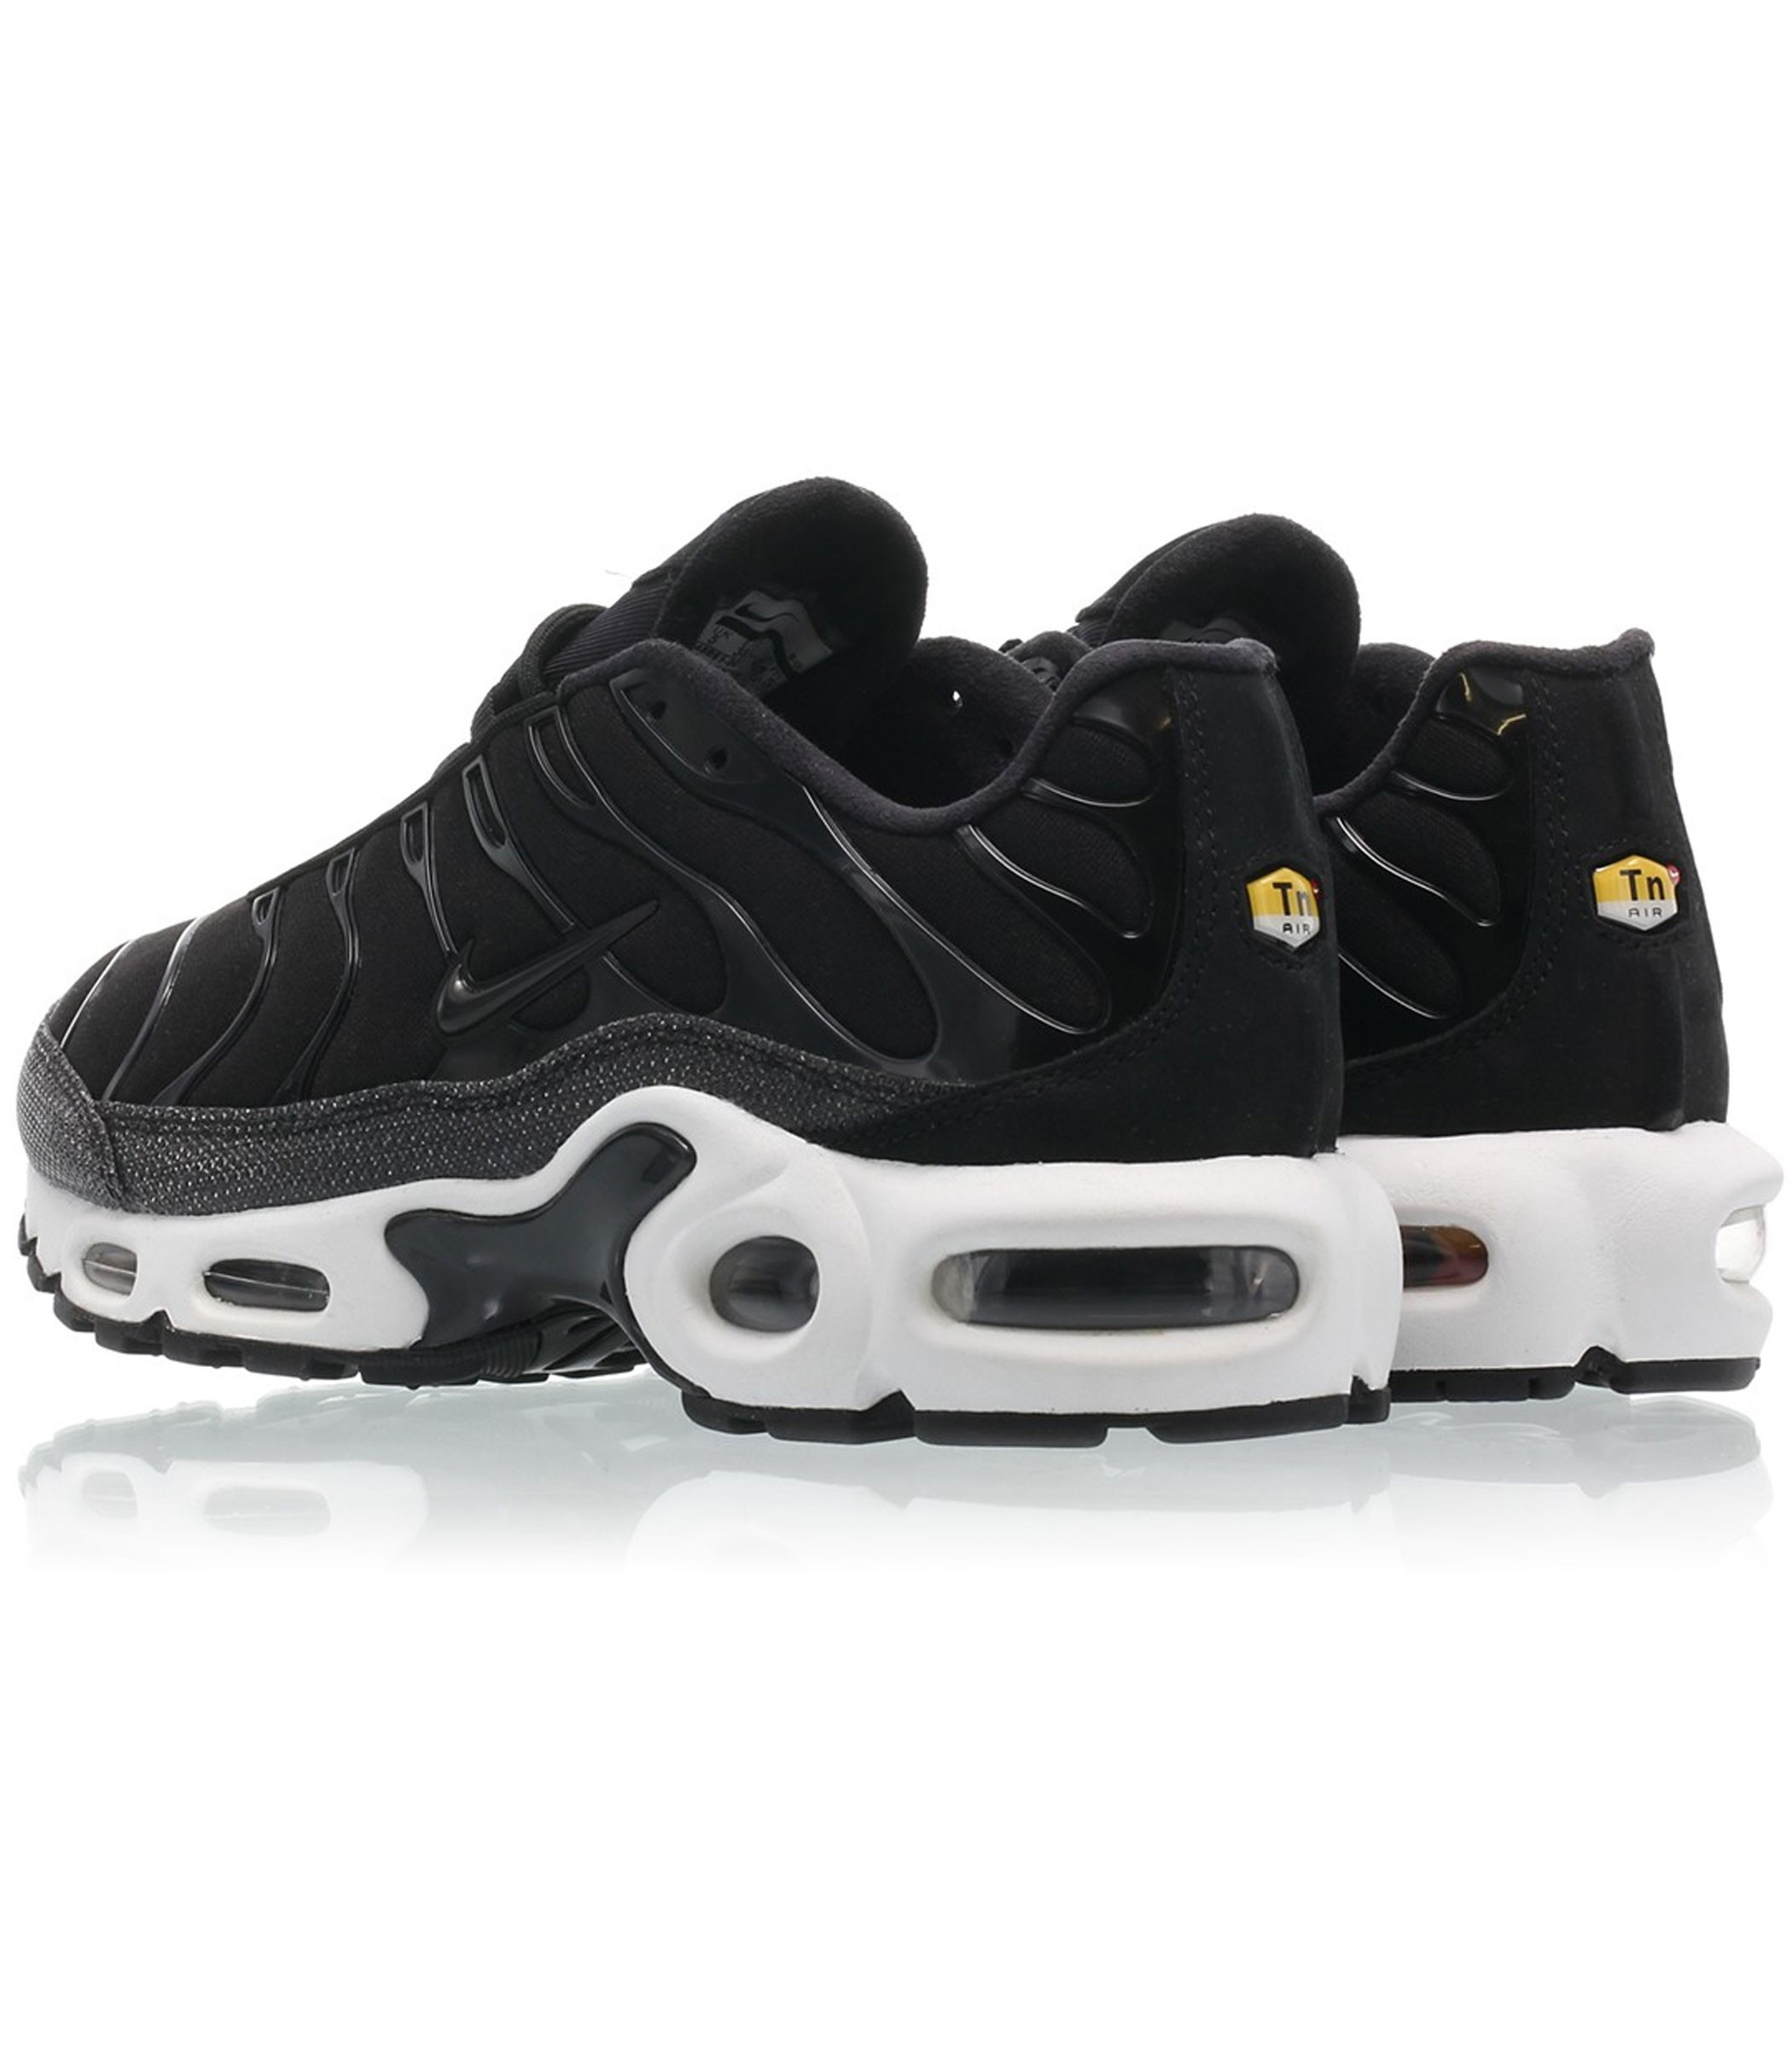 Scarpe Nike Max 848891 001 Plus Tn Premium Air Montorostore it 0OPwnk